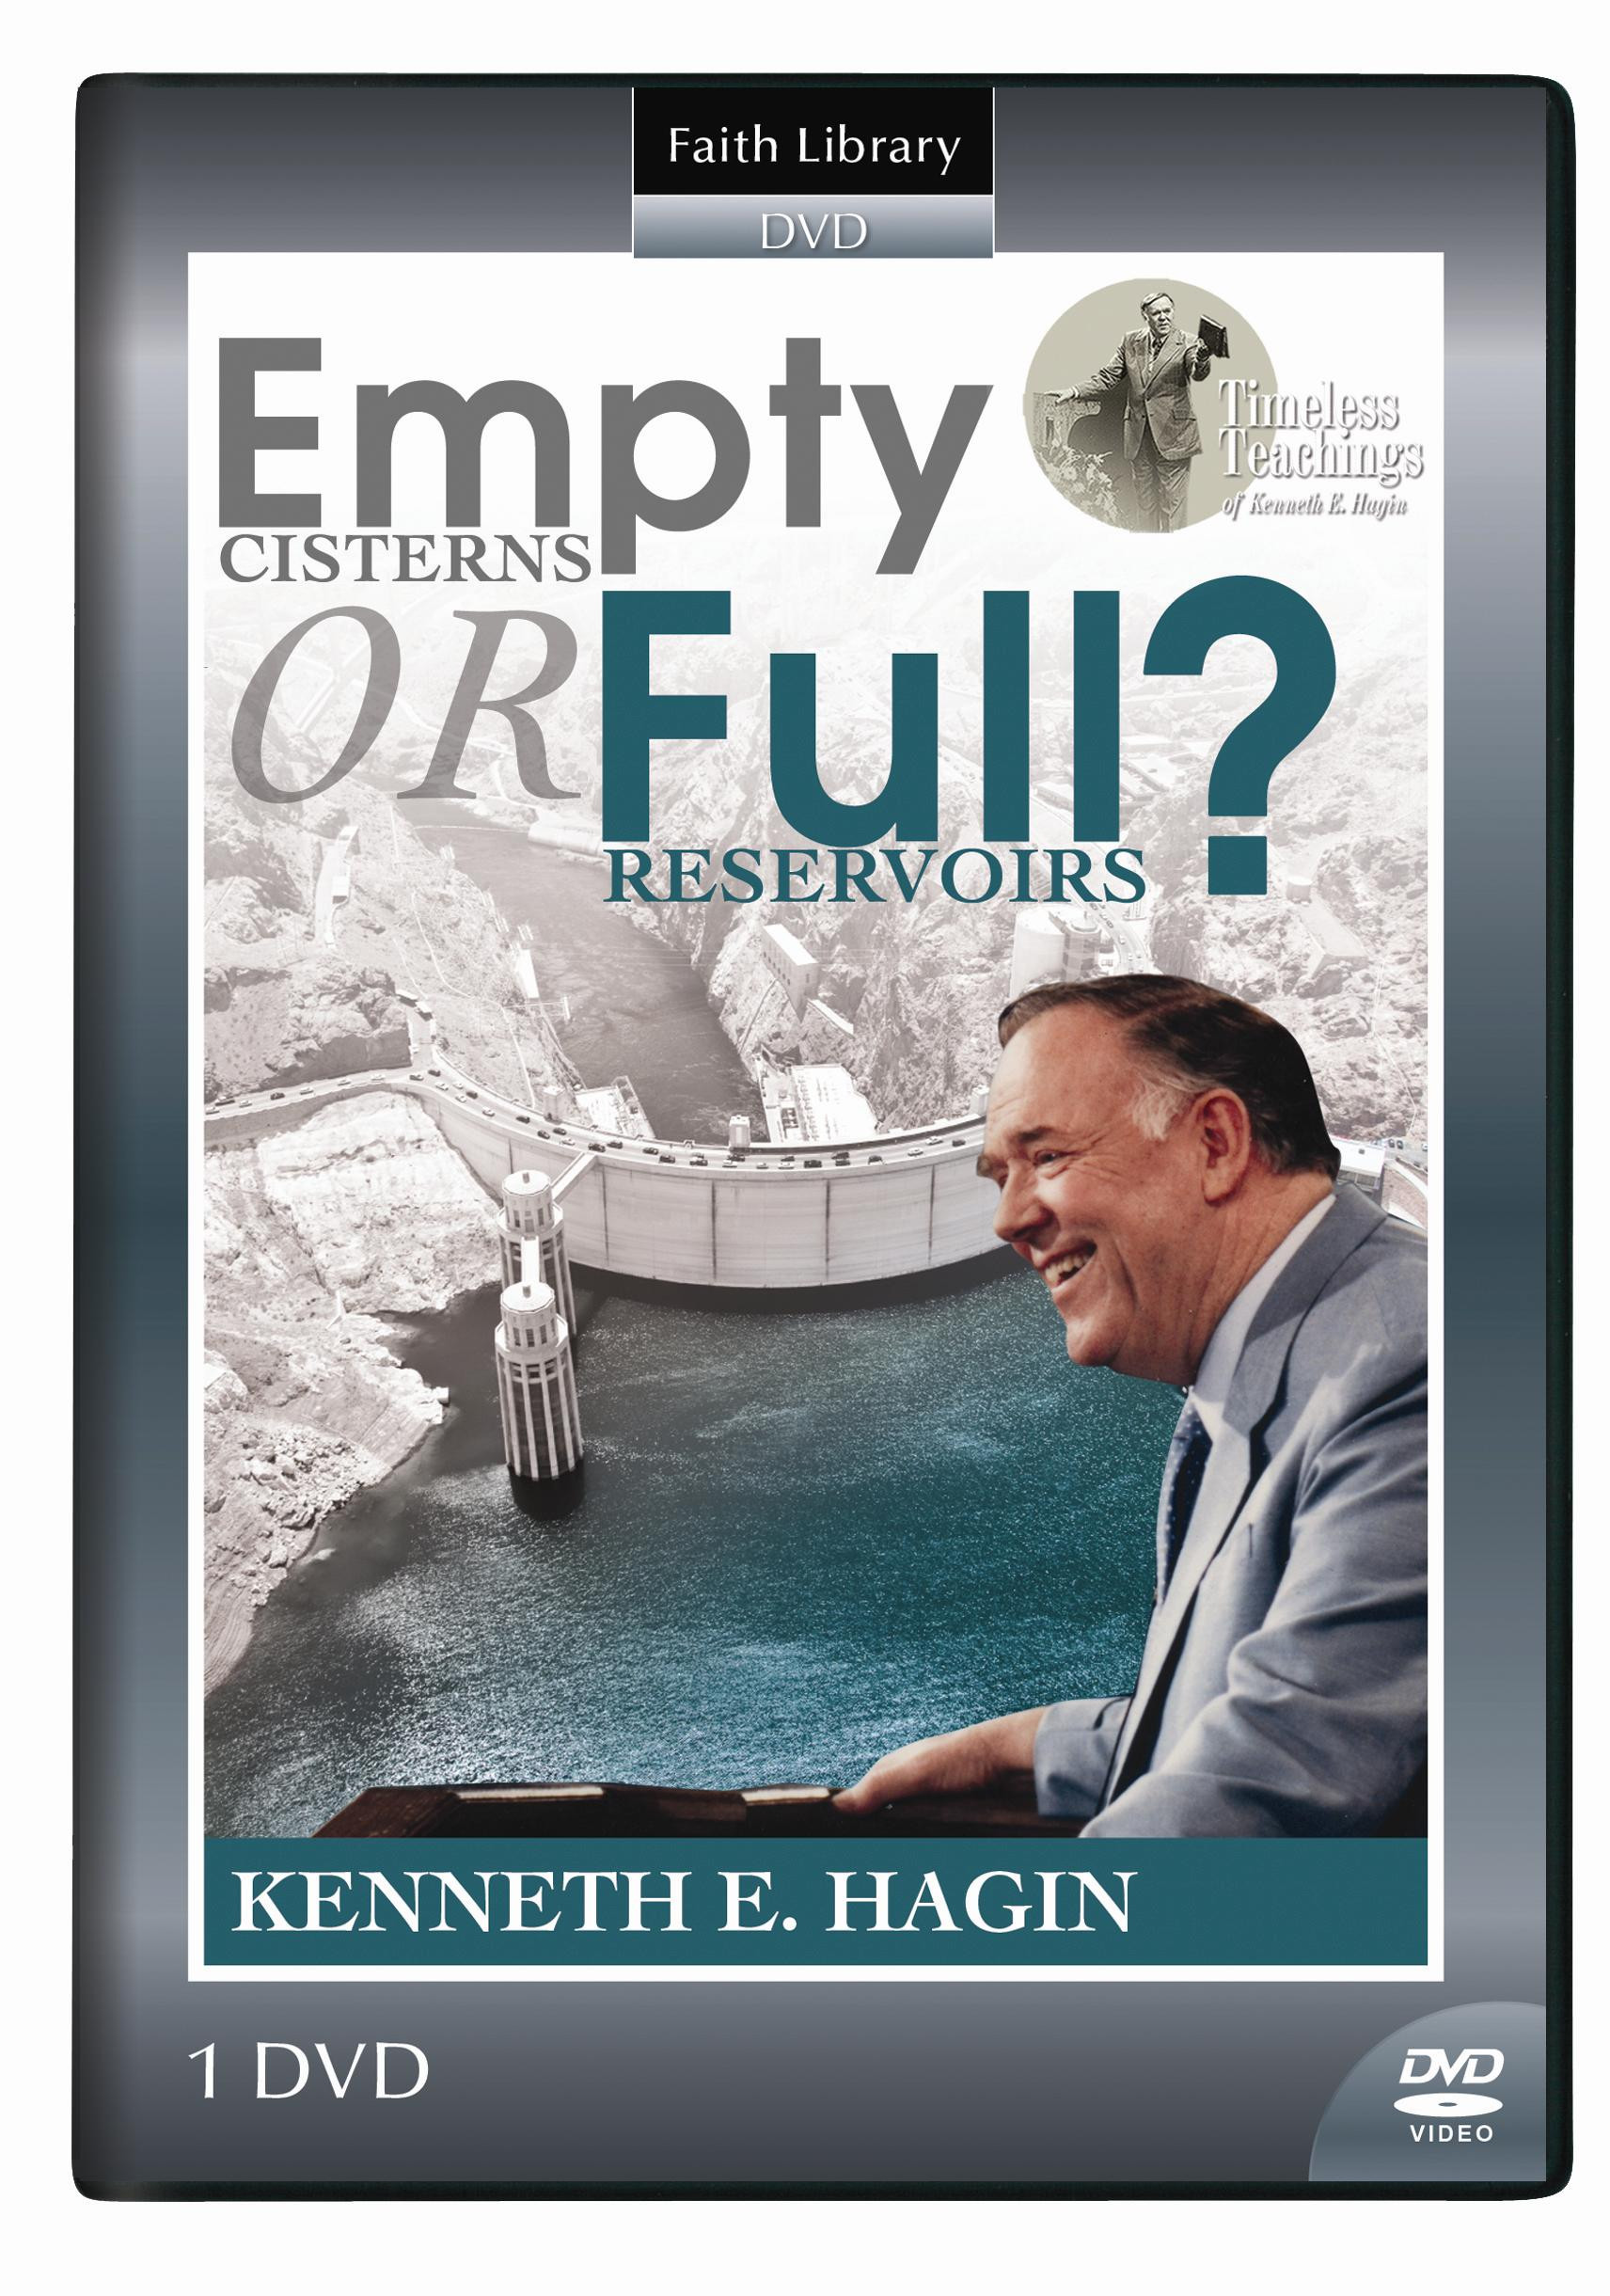 Empty Cisterns or Full Reservoirs? (1 DVD)